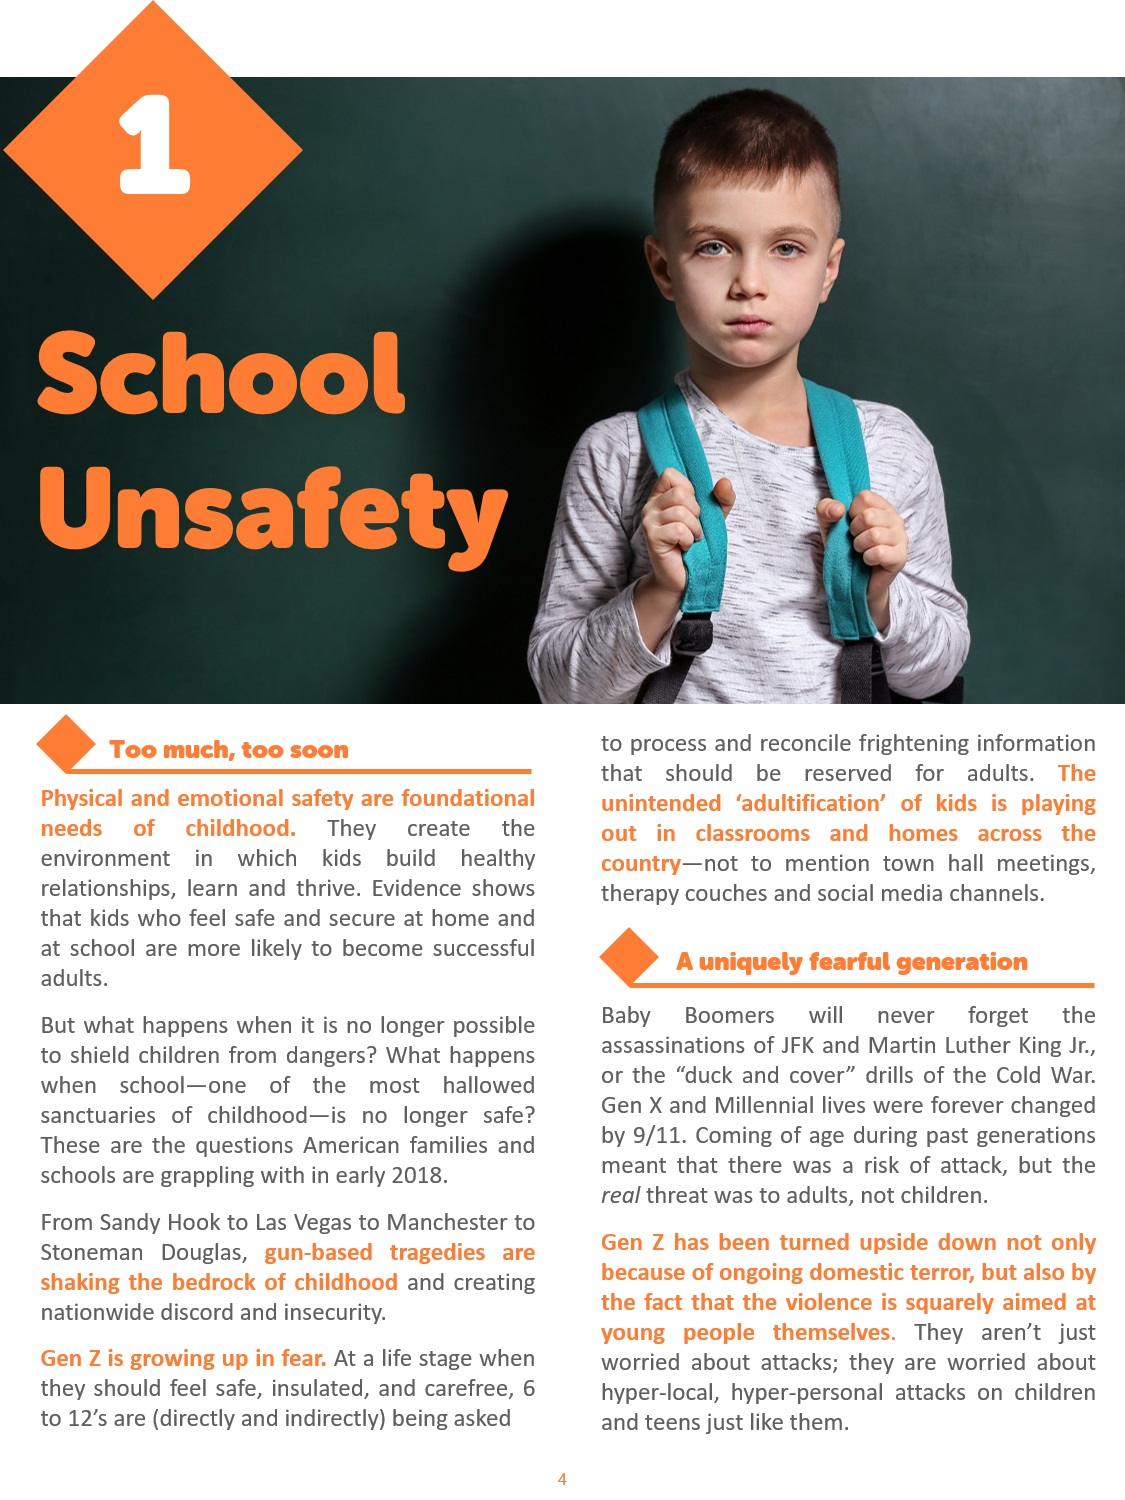 School Unsafety Preview